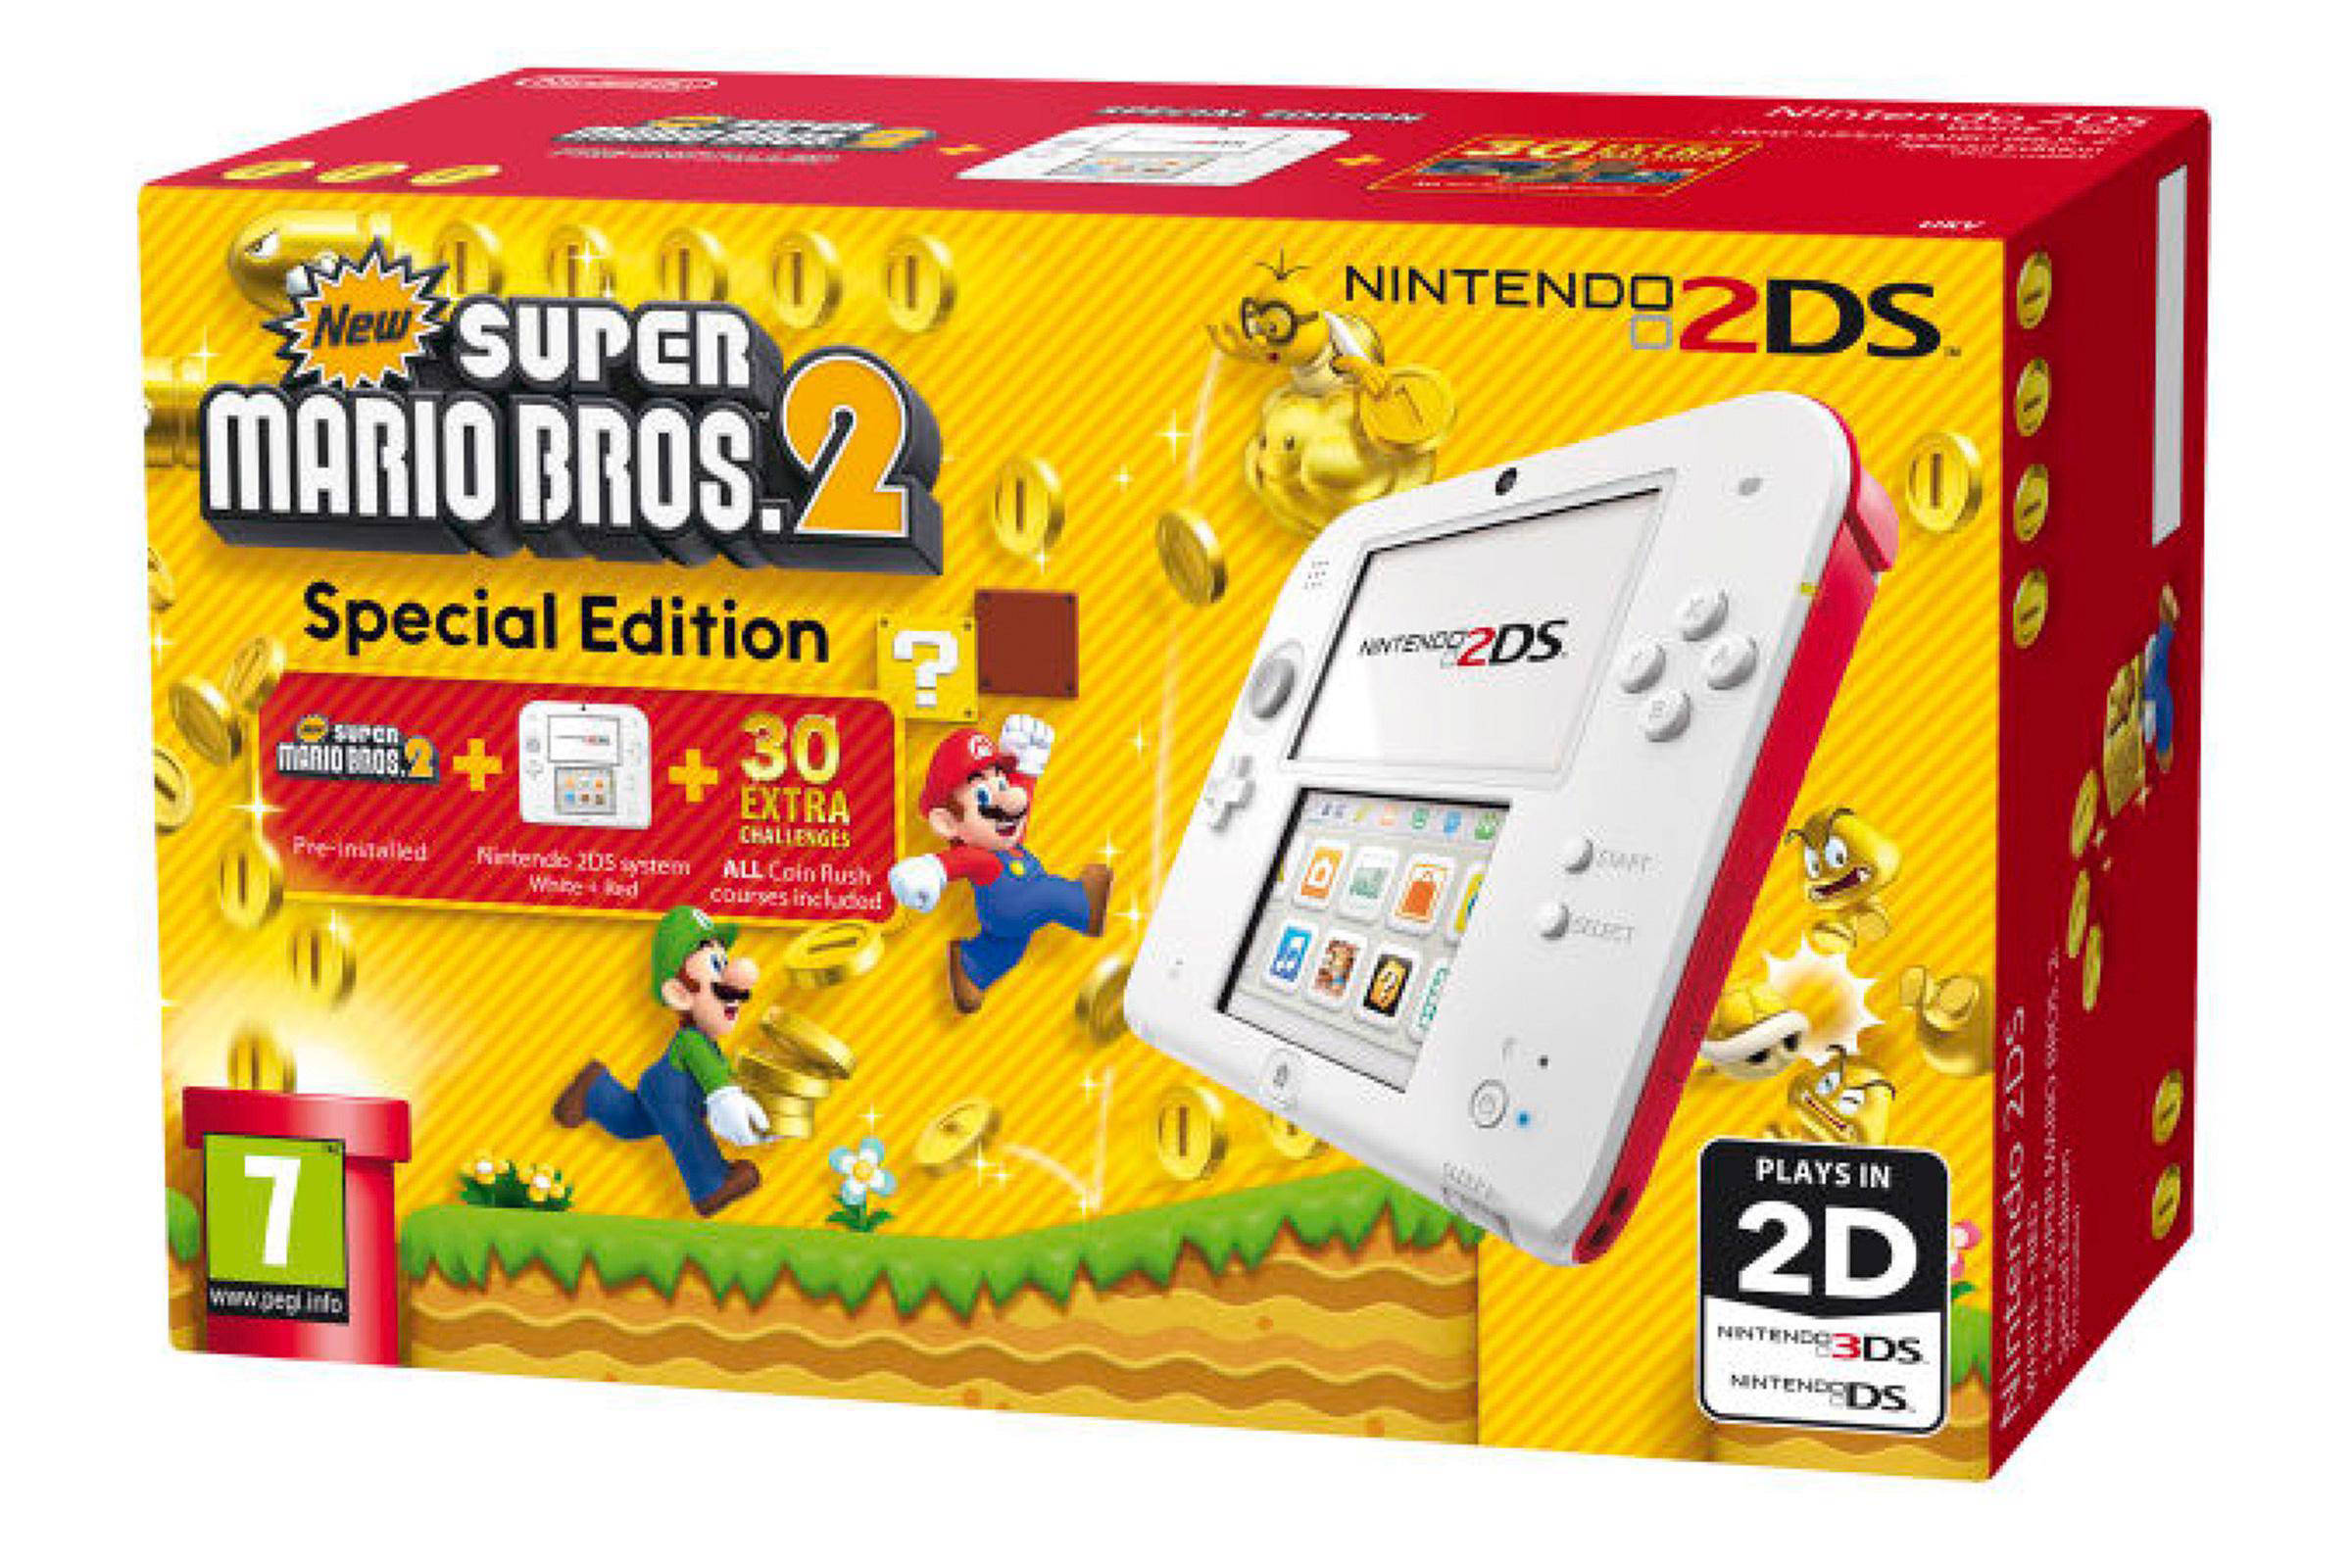 Nintendo 2DS 2203832 + New Super Mario Bros 2